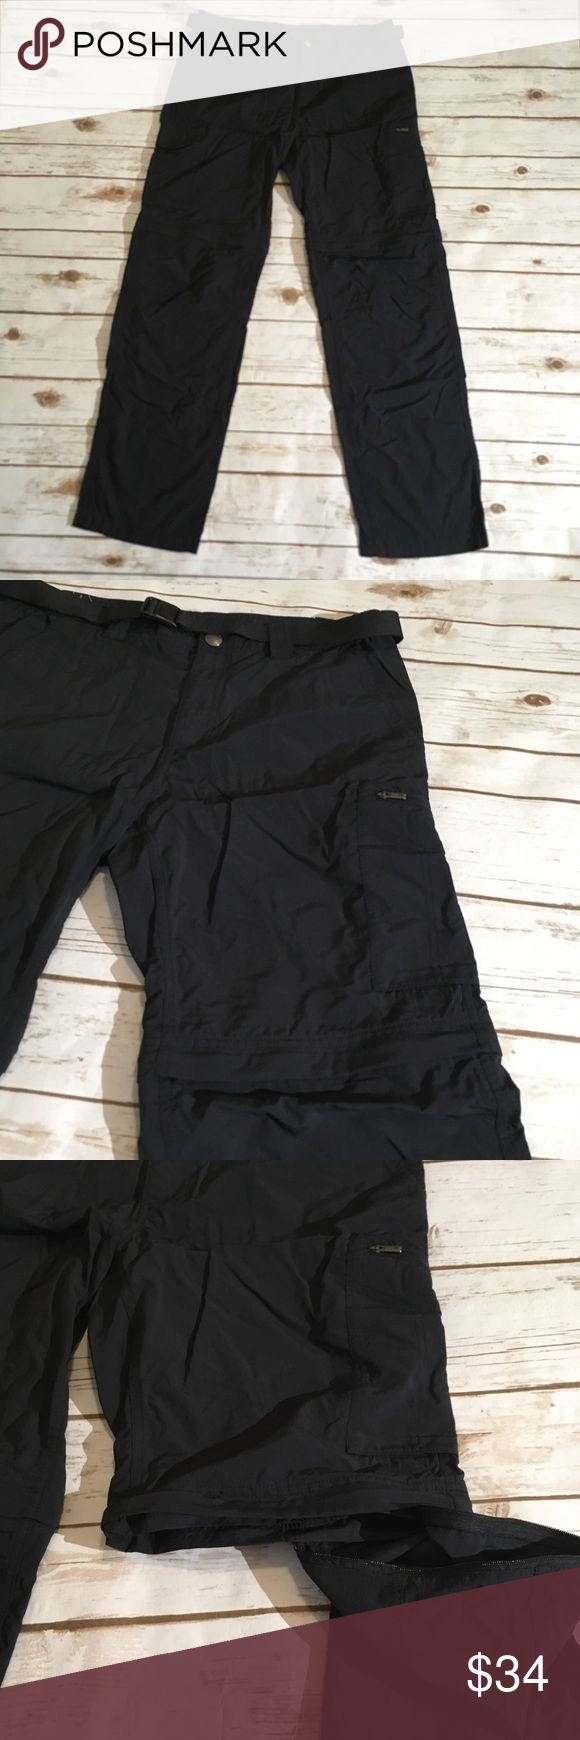 "Columbia lightweight hiking pant convert to shorts Columbia black lightweight men's hiking pants, converts to shorts 🌟Size- Men's 34 x 32 🌟Flat Measurements- 16"" waist 10.5"" rise 31.5"" inseam 9.5"" inseam for shorts  🌟Material- 100% nylon 🌟Condition- Excellent! No flaws noted Columbia Pants"